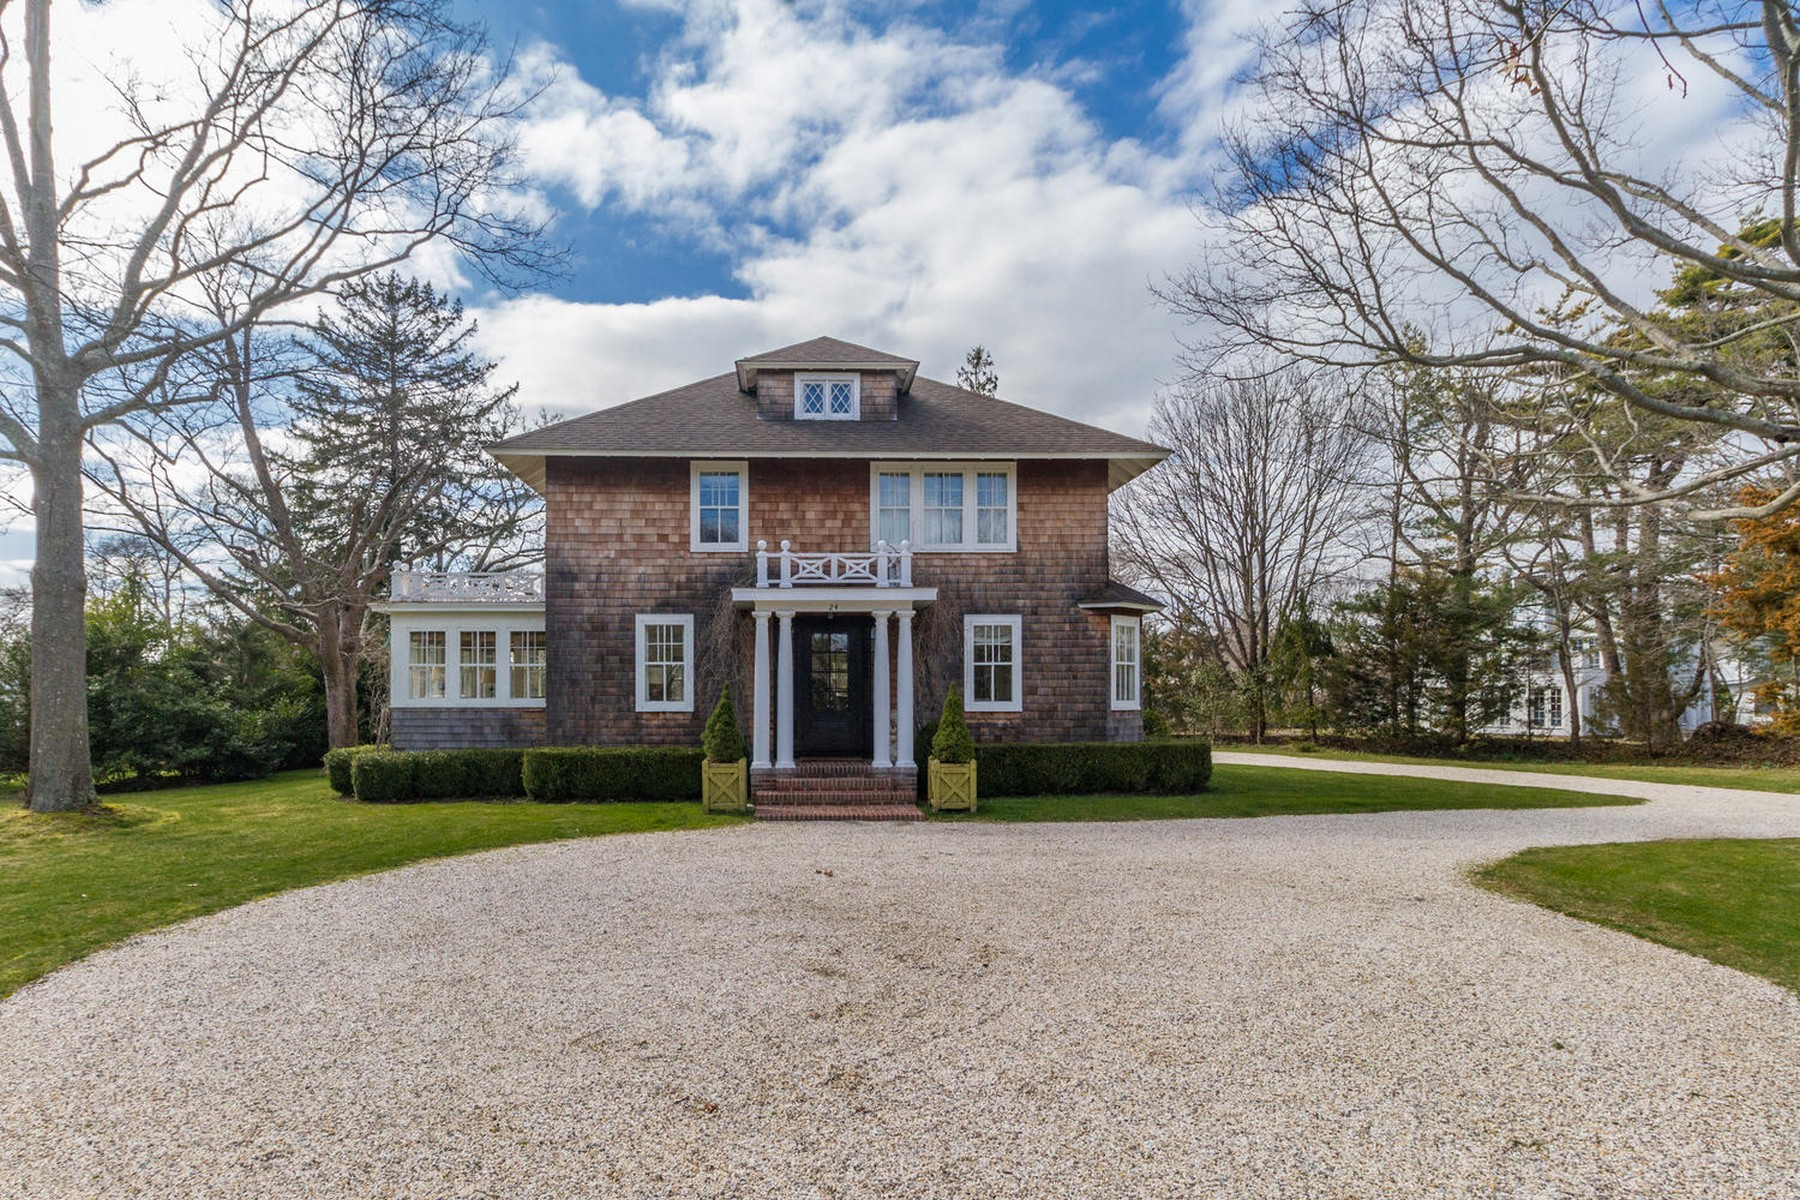 Single Family Home for Sale at Colonial 24 S Howells Point Rd Bellport, New York, 11713 United States